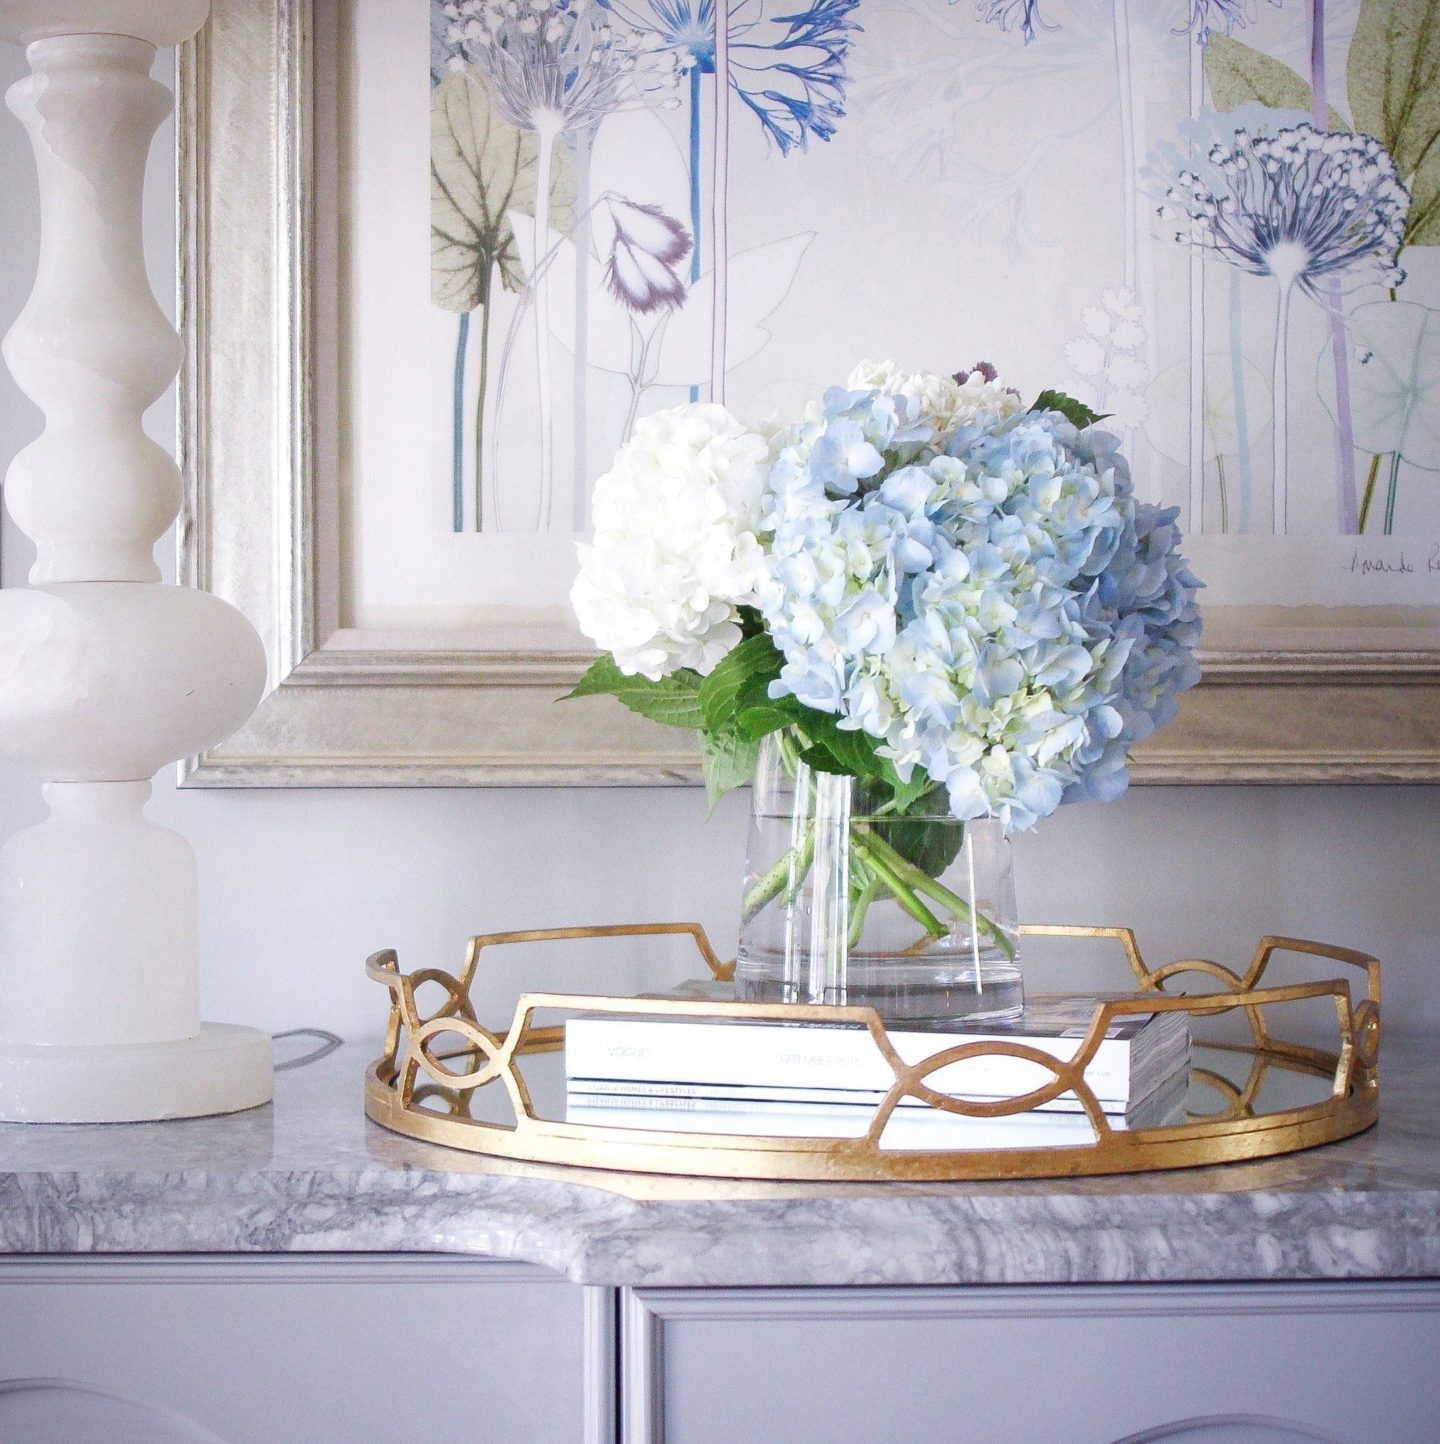 Simple hydrangea arrangement for buffet tables Gold tray and marble white lamps to add light.